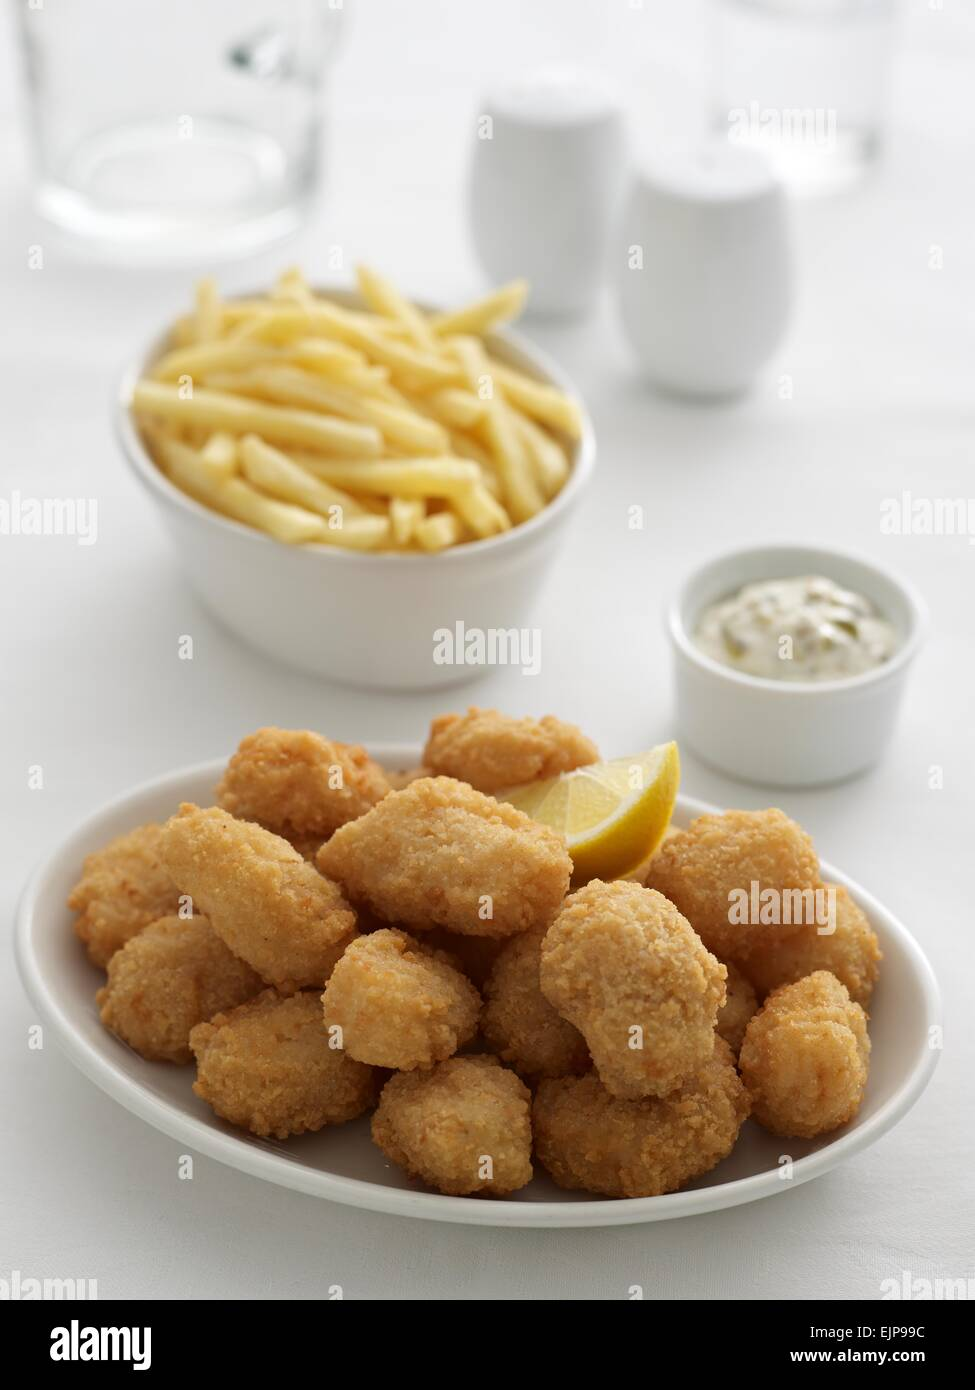 Breaded fish nuggets chips and peas in separate bowls tartare sauce cruet set jug and glass of water. - Stock Image